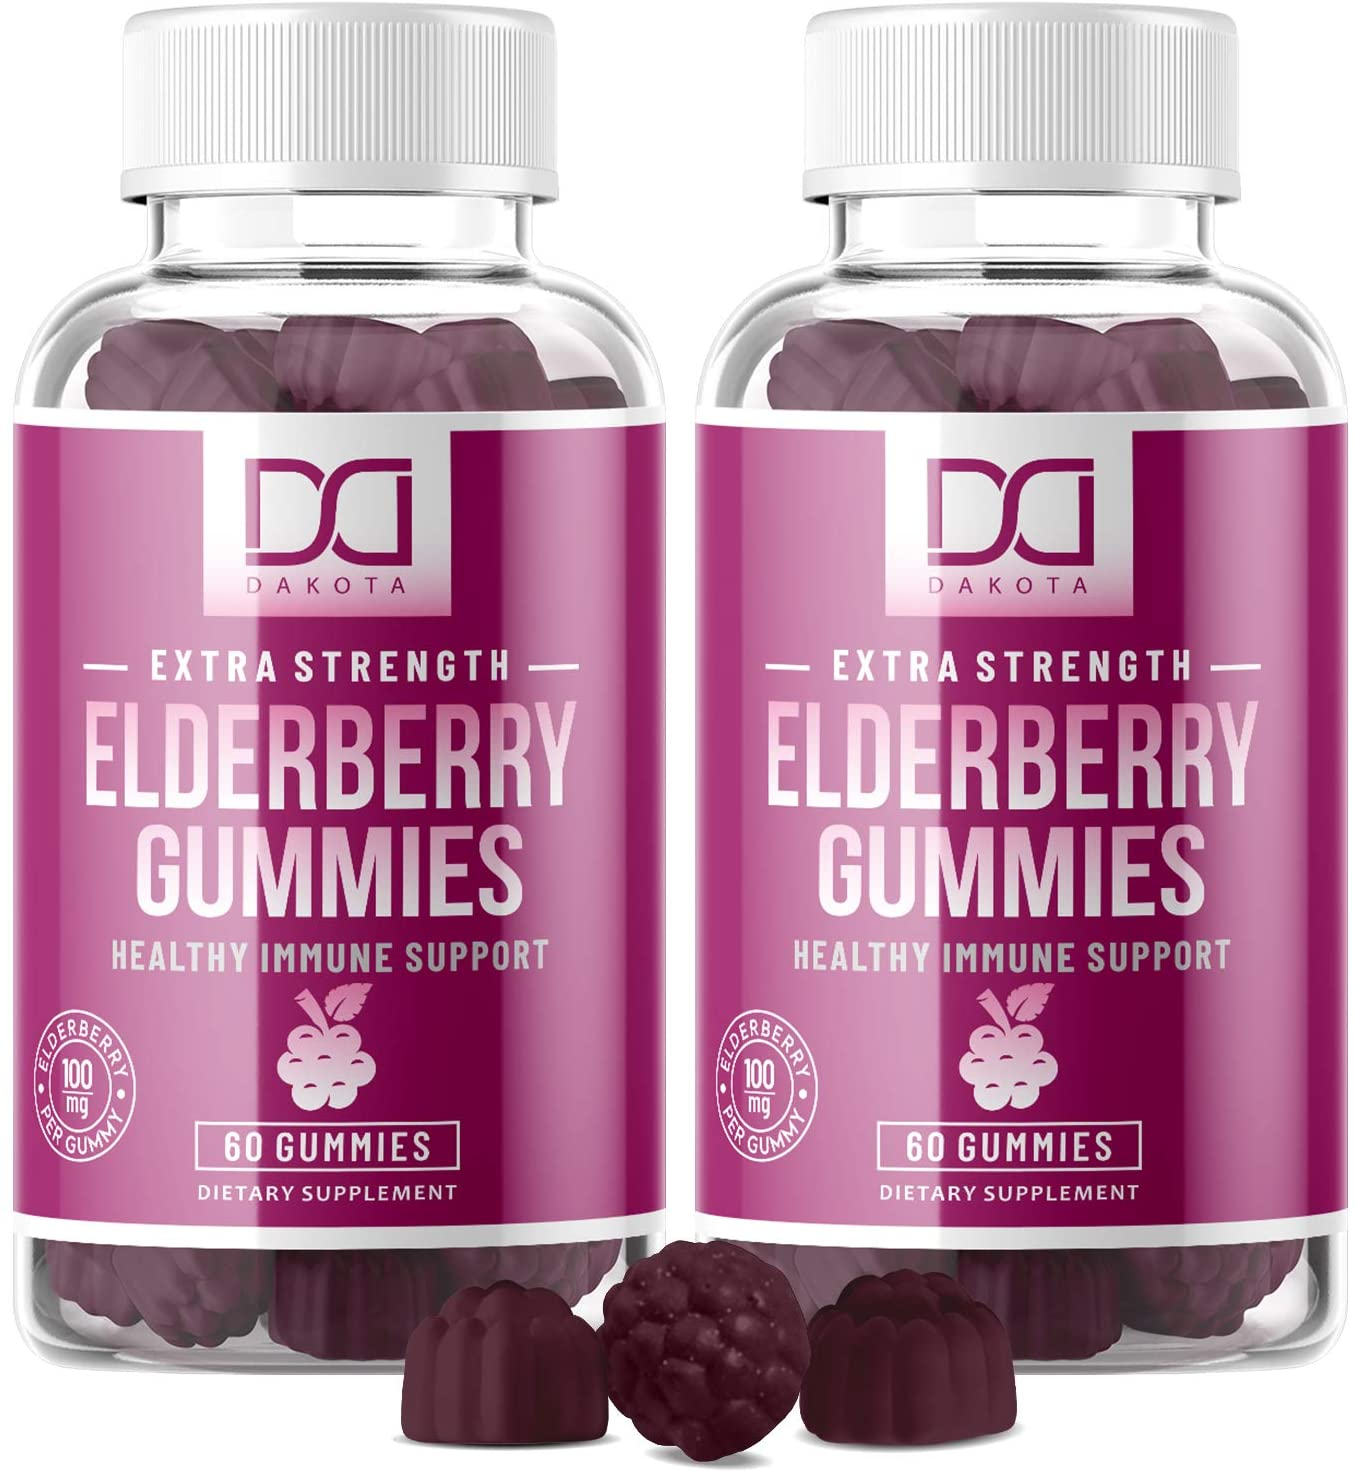 Elderberry Gummies Elderberry Extract